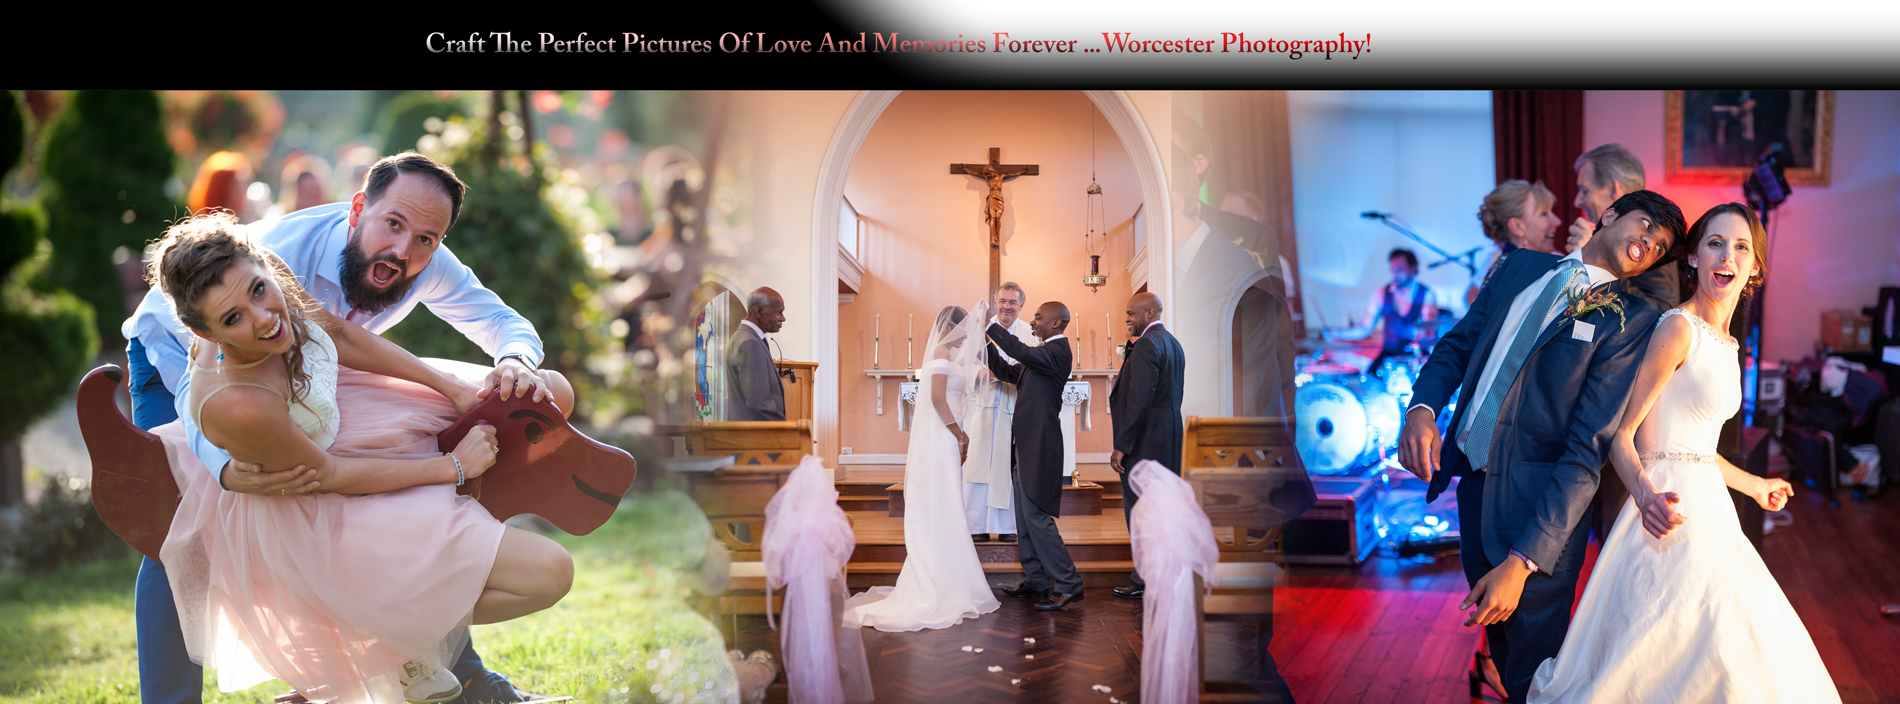 Professional Wedding Photographer.